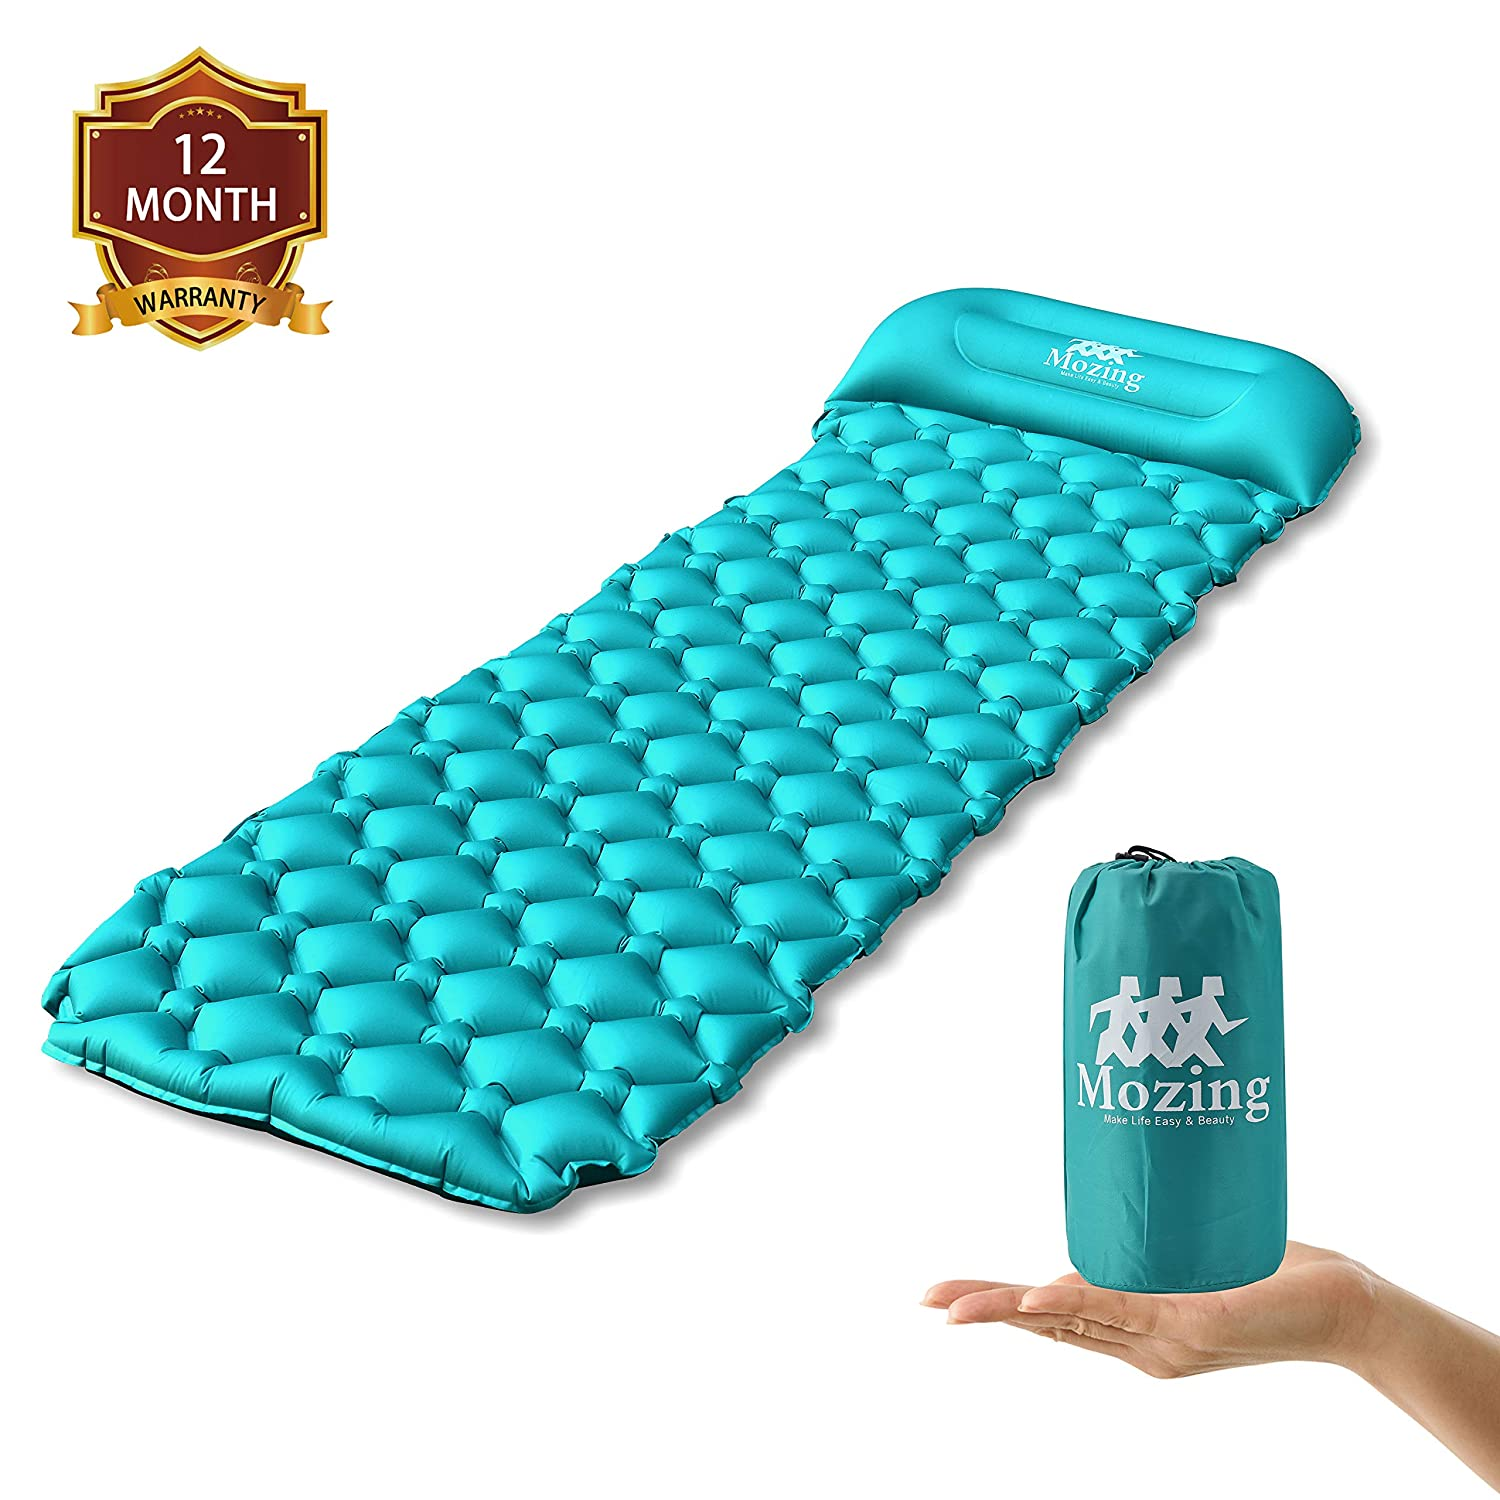 Peacock Blue Ultralight Sleeping Mats Camping Pad Inflatable Lightweight Air Pads for Hiking Backpacking Traveling and Outdoor Mozing Camping Sleeping Pad Self Inflating with Attached Pillow